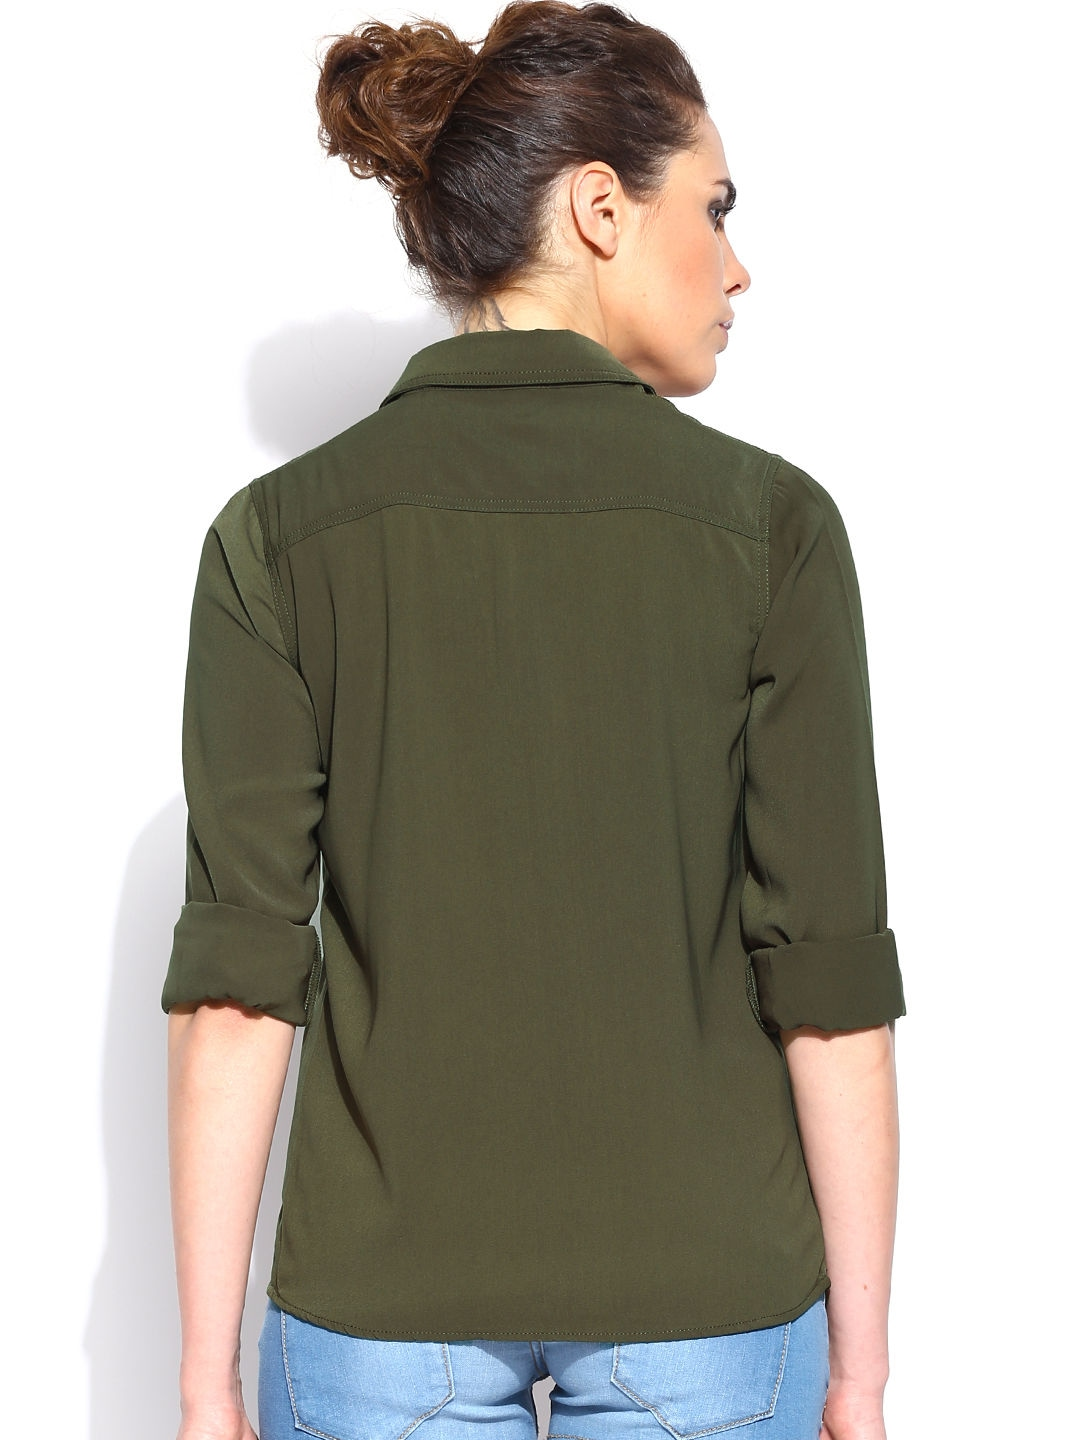 Myntra Roadster Women Olive Green Shirt 560963 Buy